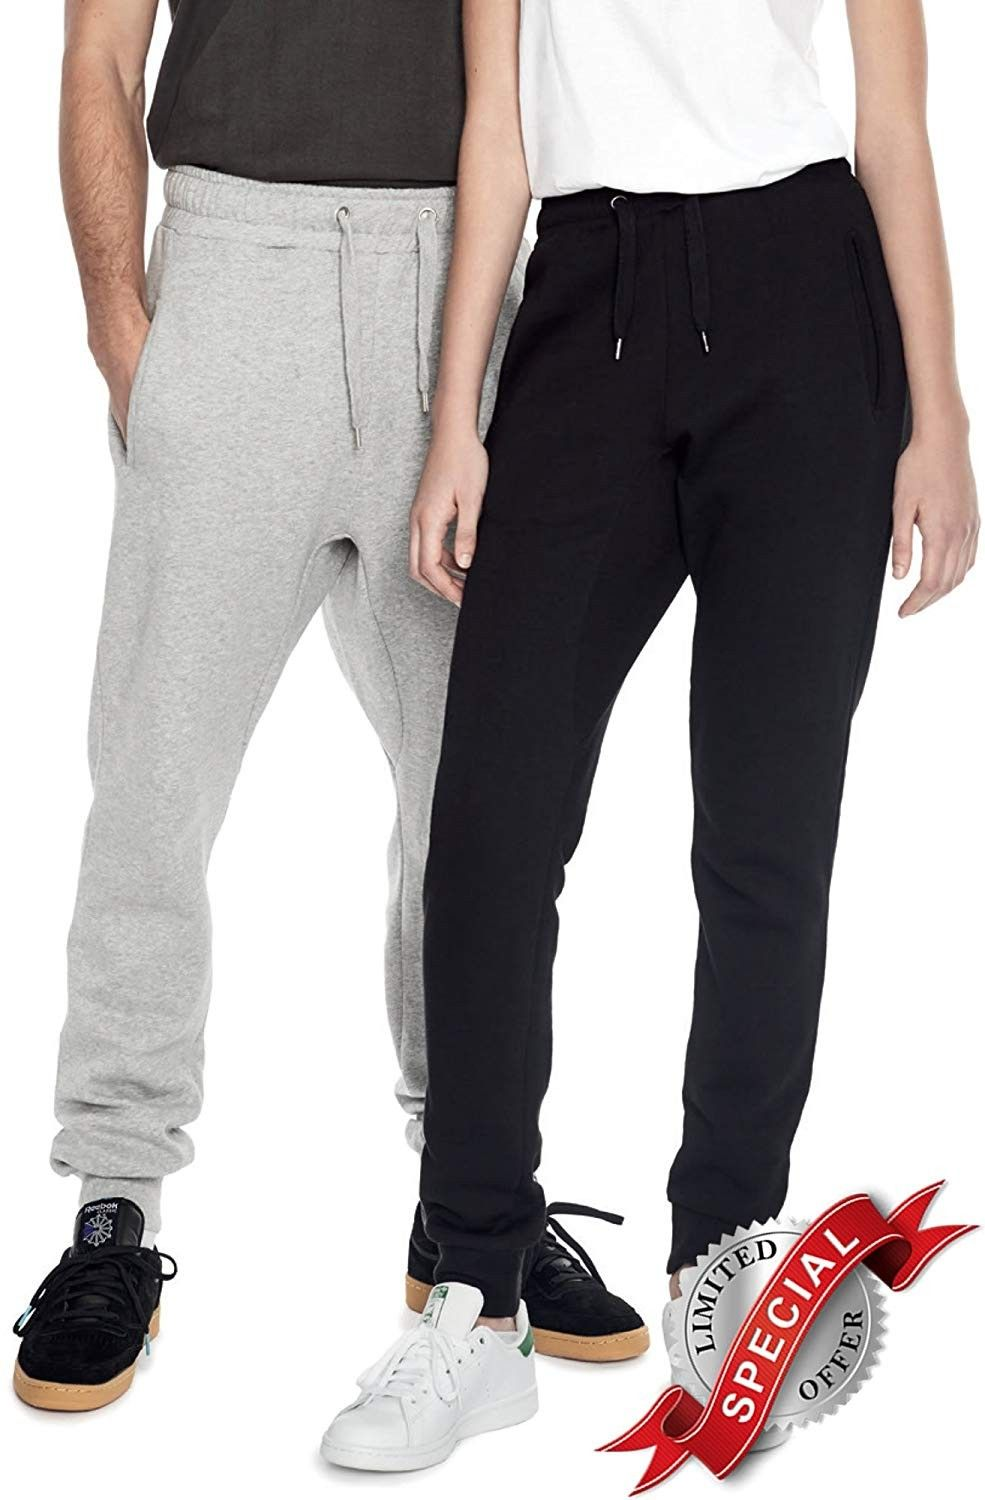 Yoga Joggers Sweatpants & Hoodie 2 Piece Set for Men with